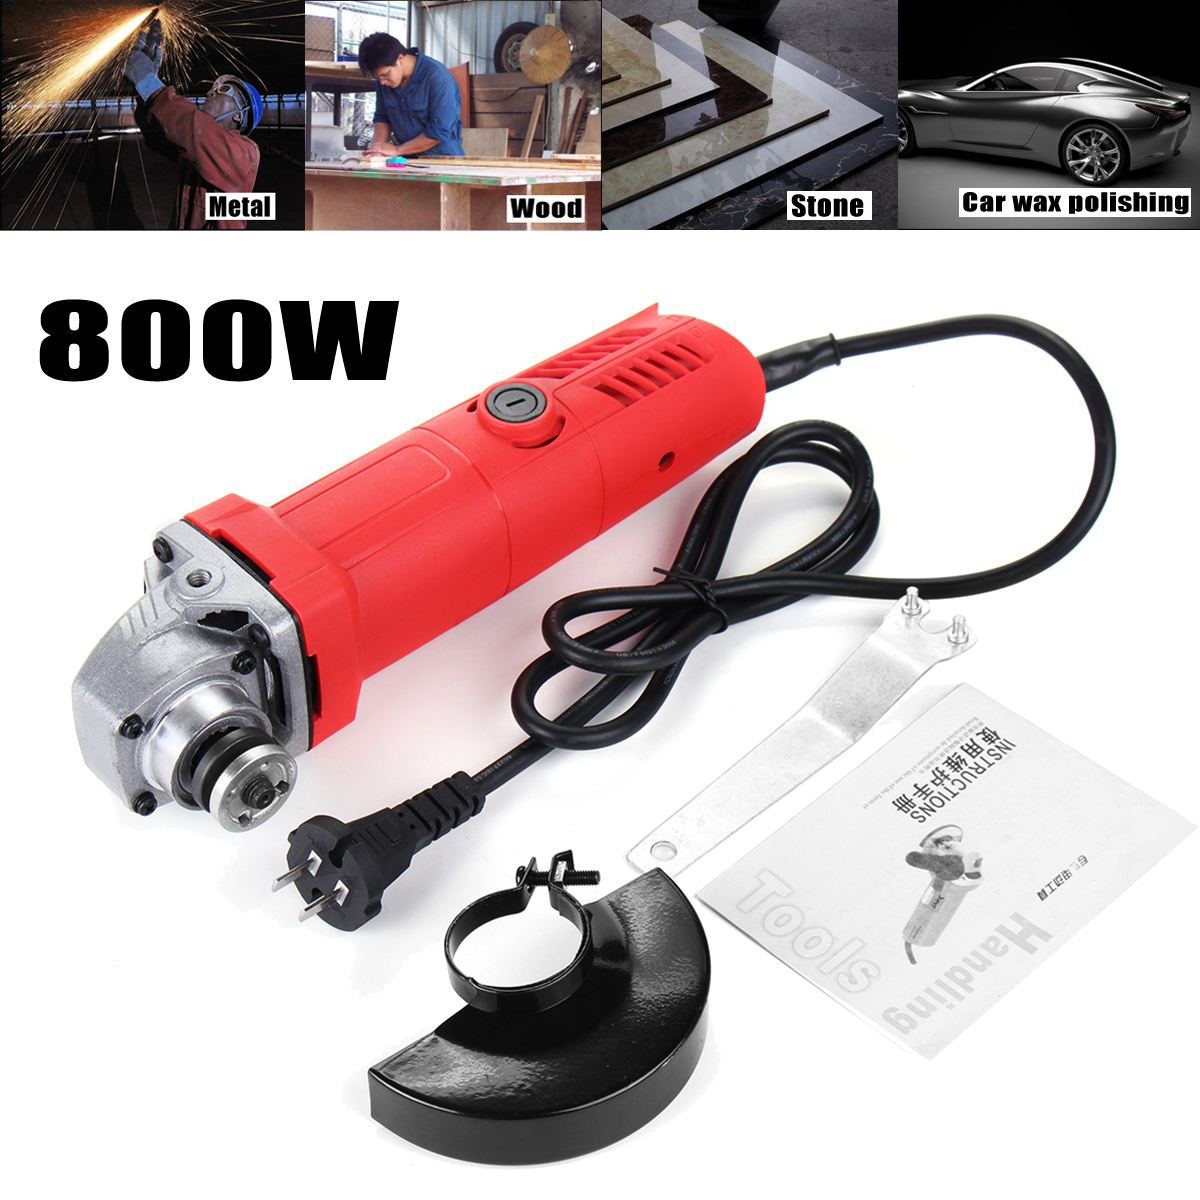 100mm 800W 220V Portable Electric Angle Grinder Muti-Function Household Polish Machine Grinding Cutting Polishing Machine cukyi household electric multi function cooker 220v stainless steel colorful stew cook steam machine 5 in 1